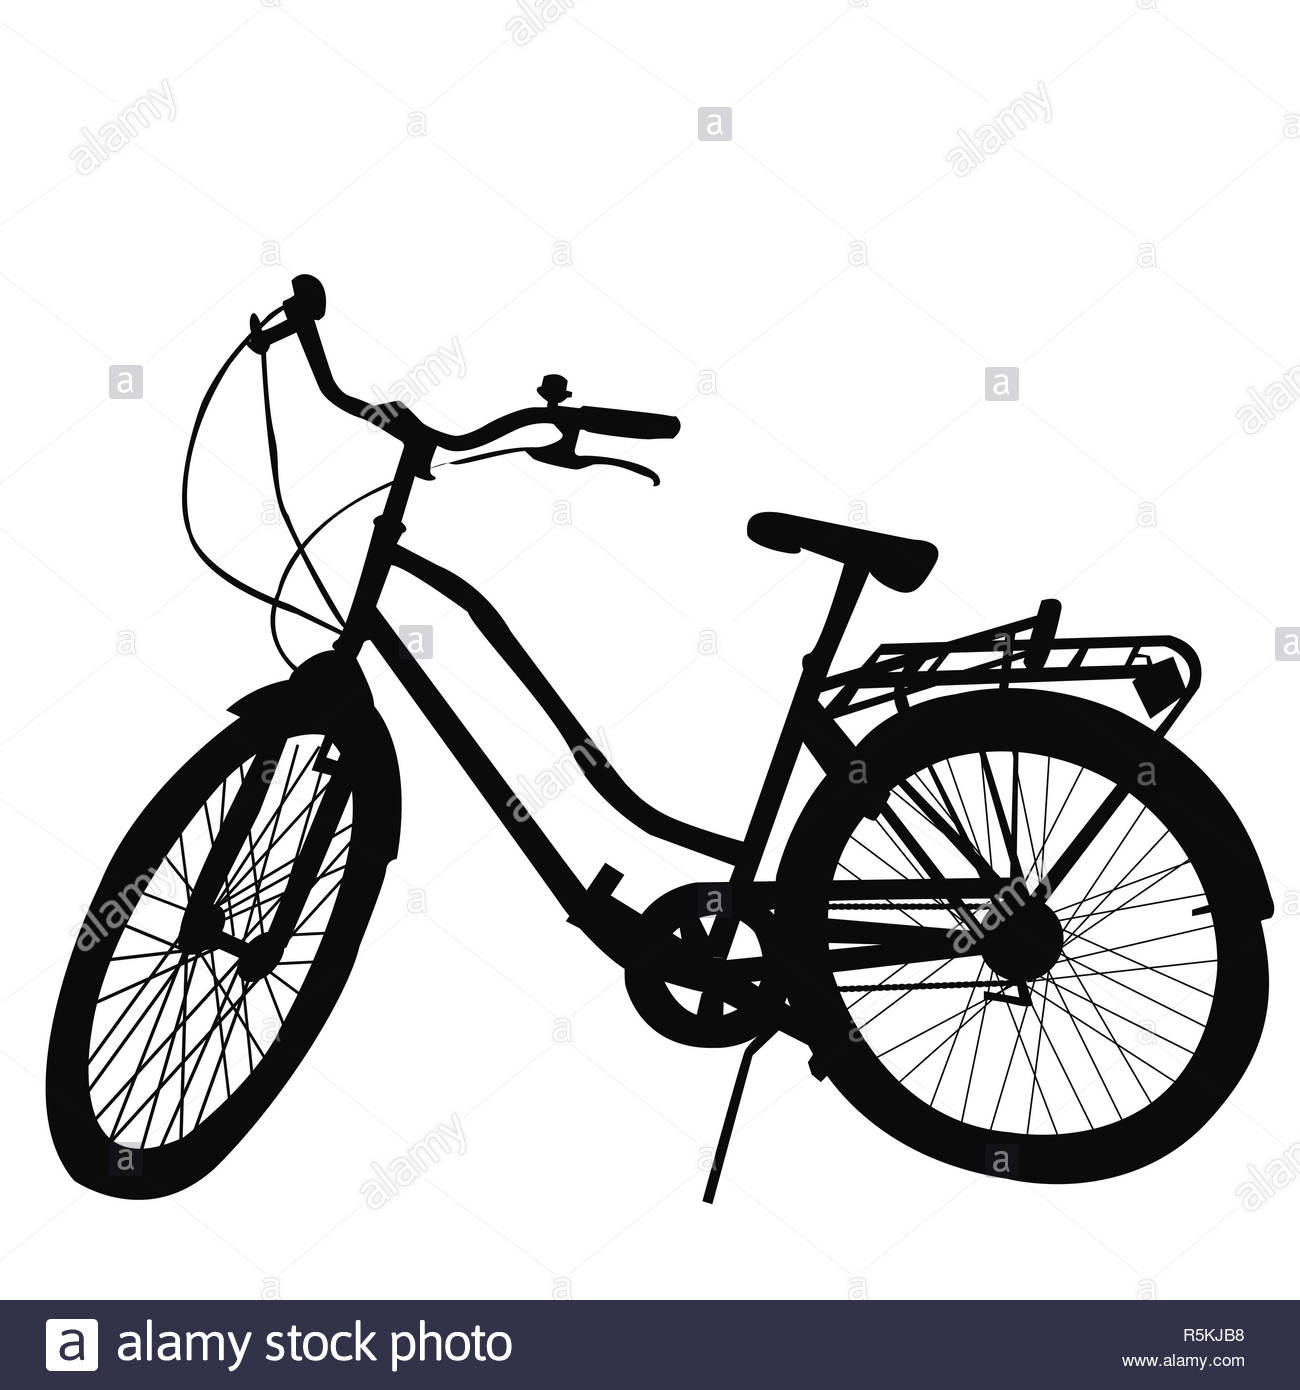 vehicle seat black and white stock photos images page 3 alamy 1988 Maserati Biturbo Interior silhouette of bicycle on white background stock image